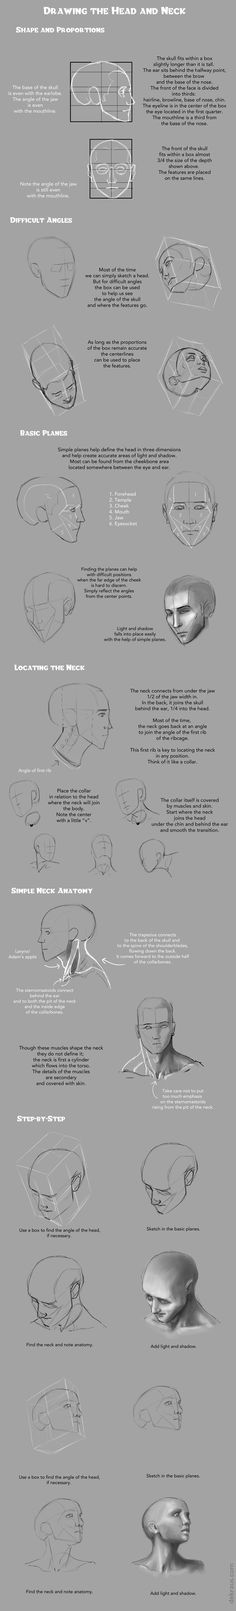 Drawing Heads and Necks Tutorial by banjodi on DeviantArt